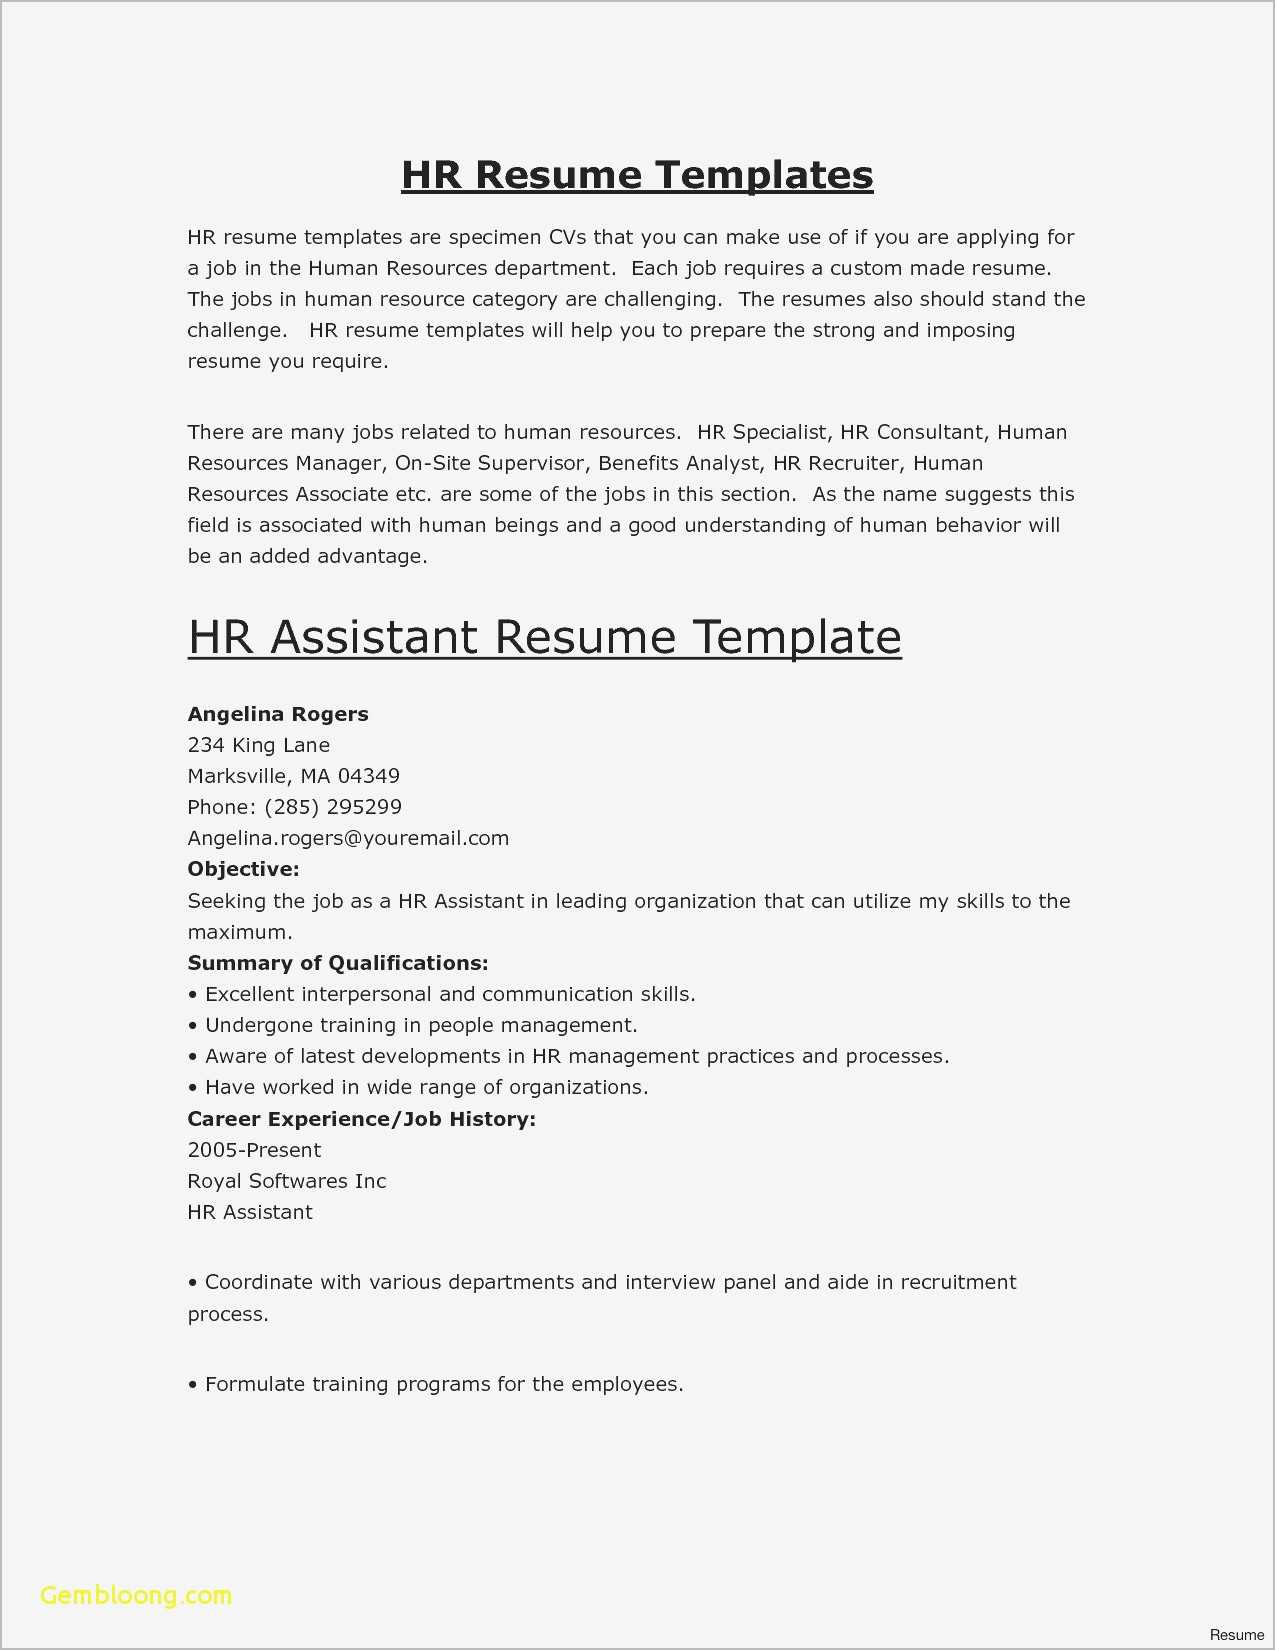 Fill In the Blank Resume Worksheet or Fill In Resume Template Samples